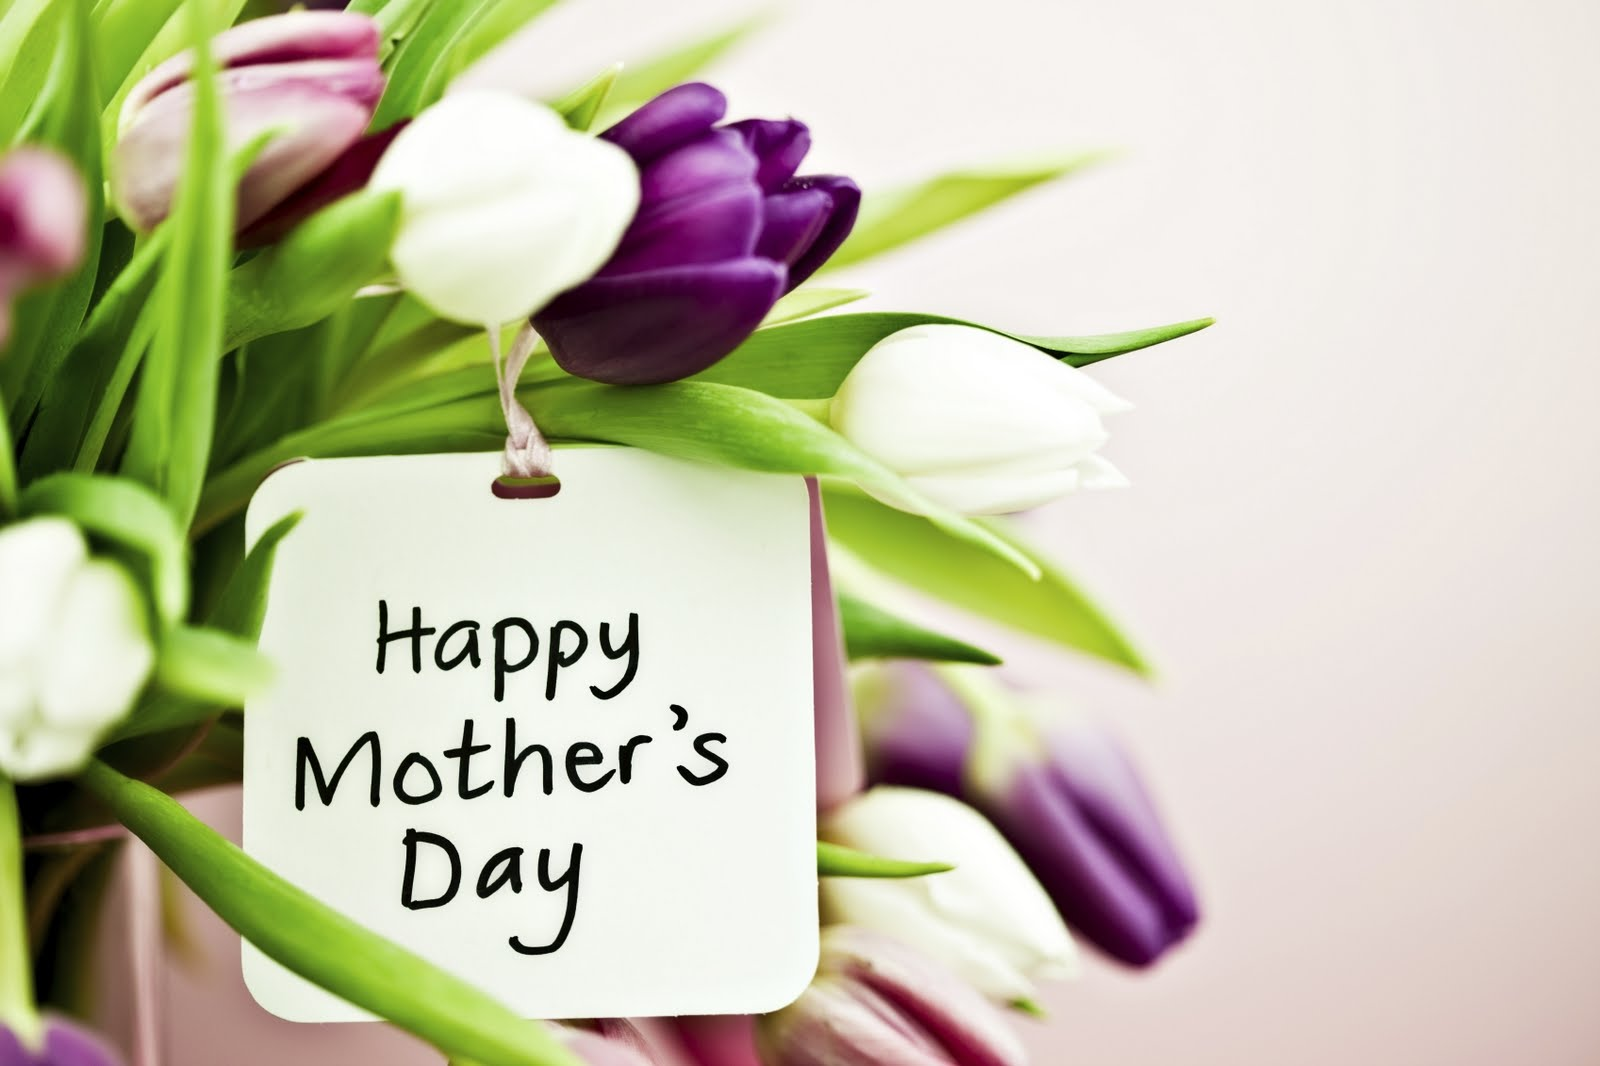 Hot happy mothers day text and image quotes wishes messages and happy mothers day greeting cards kristyandbryce Choice Image